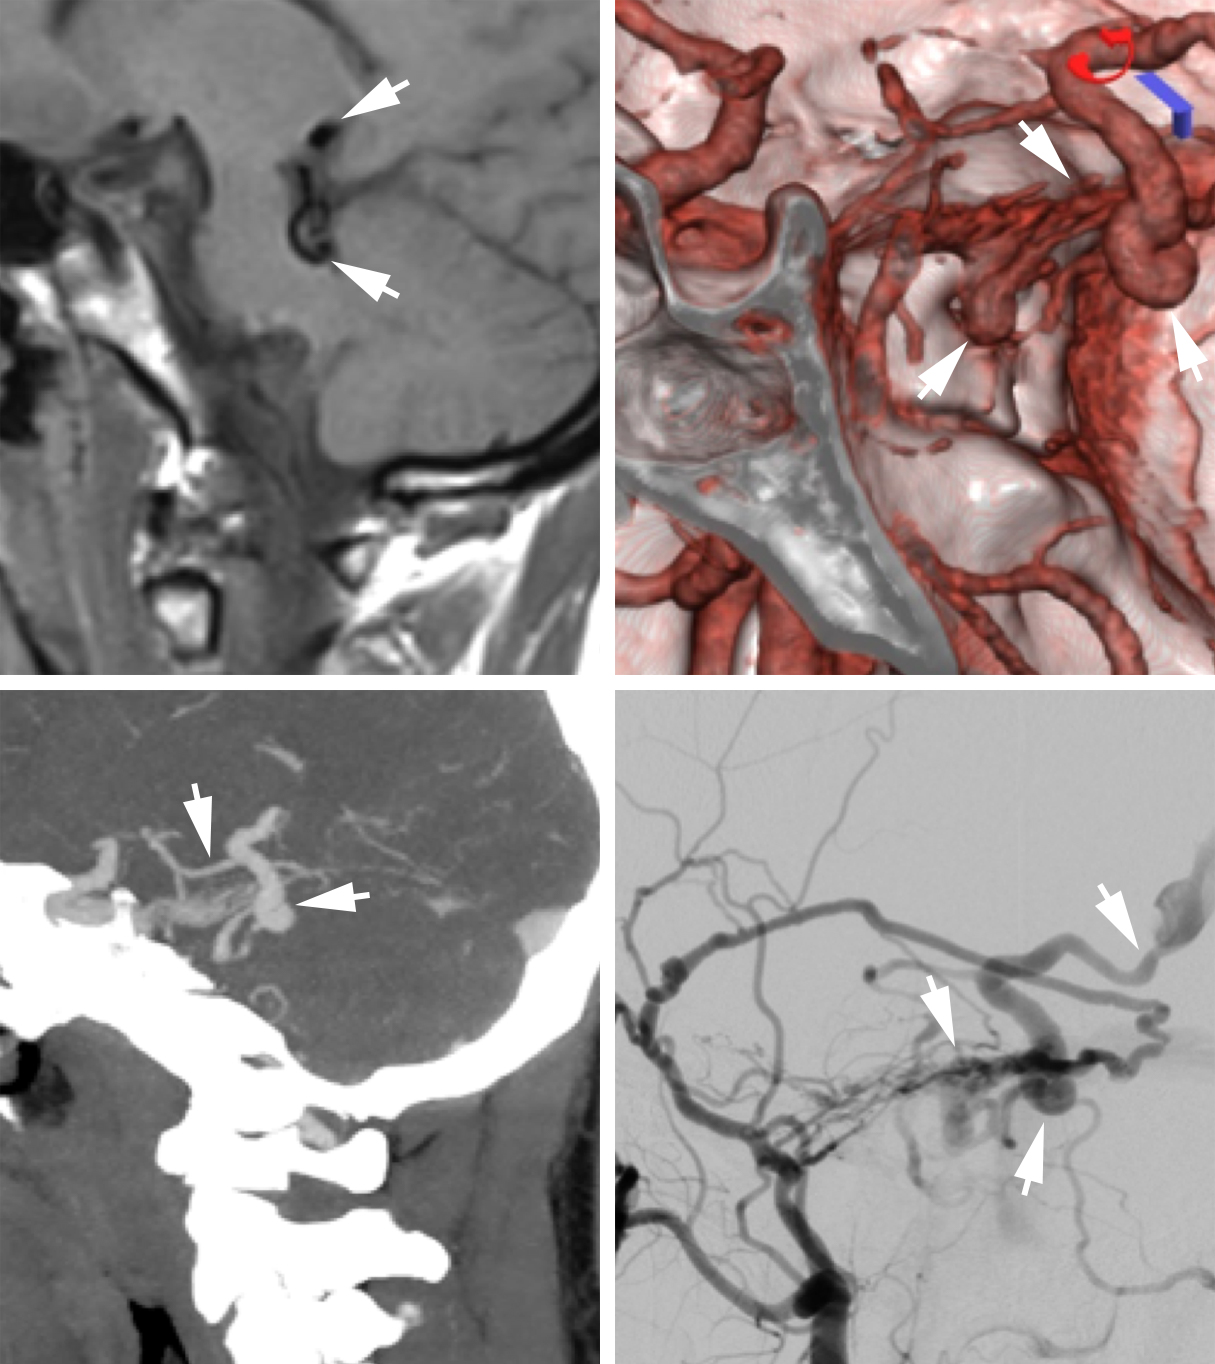 Figure 2: Right superior petrosal sinus DAVF, Cognard IIa+b. Top row: Sagittal T1W MRI (left), CTA 3D-reconstruction image (middle), and Sagittal CTA MIP reconstruction (right image) demonstrate focal dilated vessels (arrows). DSA (bottom row) confirms a right superior petrosal sinus DAVF, Cognard IIa+b (arrows) with arterial supply from the petrosquamosal division of the right middle meningeal artery via the basal tentorial artery as well as transosseous occipital branches and to a lesser extent by temporal branches of the middle meningeal artery. Venous drainage is into a prominent venous pouch with subsequent drainage into the superior petrosal sinus, petrosal vein and basal vein of Rosenthal.